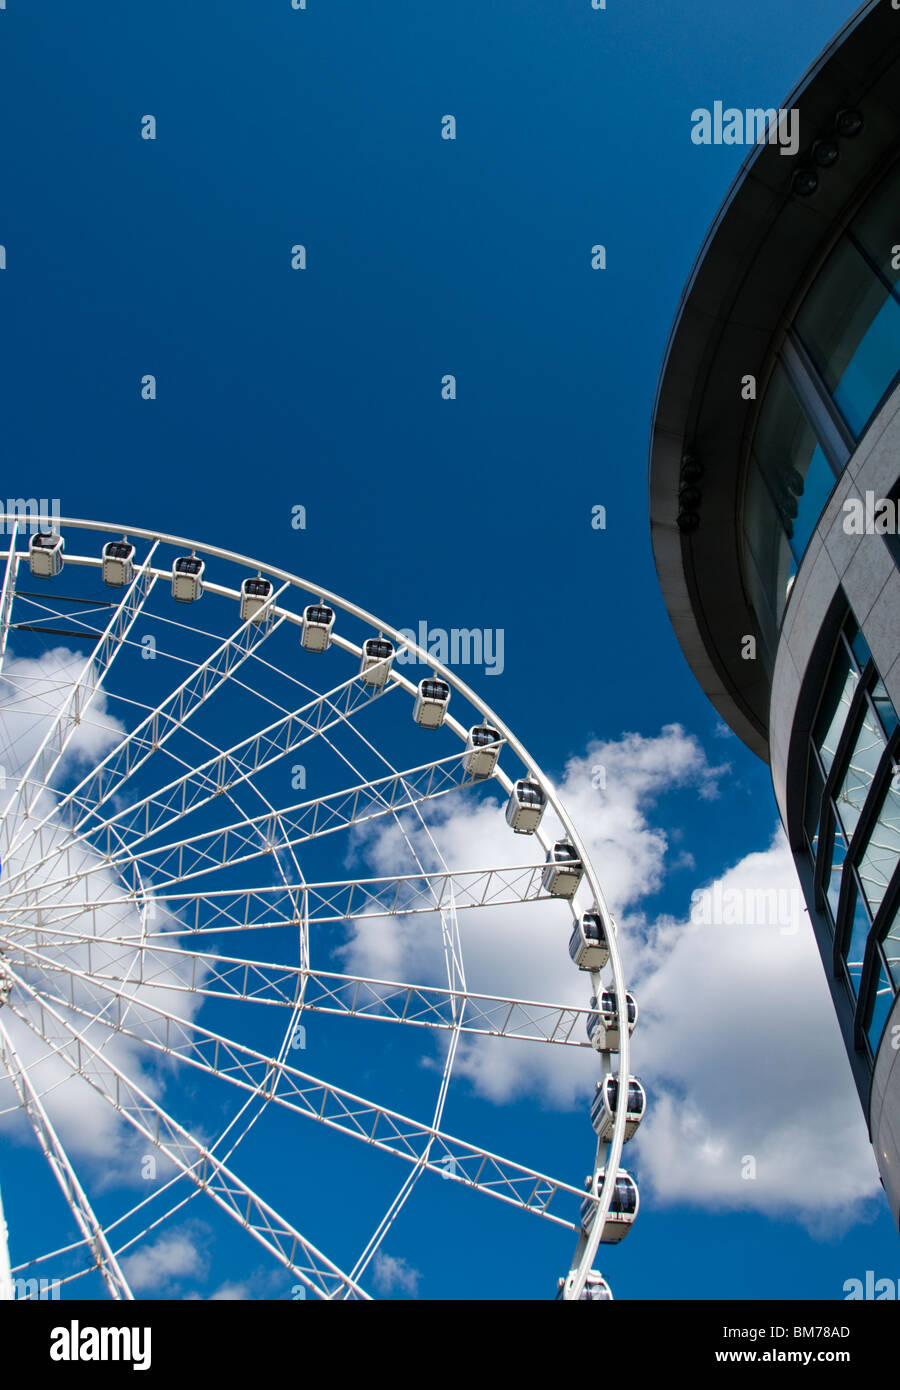 The Manchester Wheel, which was in Exchange Square, Manchester city center, England, UK, from 2004 to 2012. - Stock Image